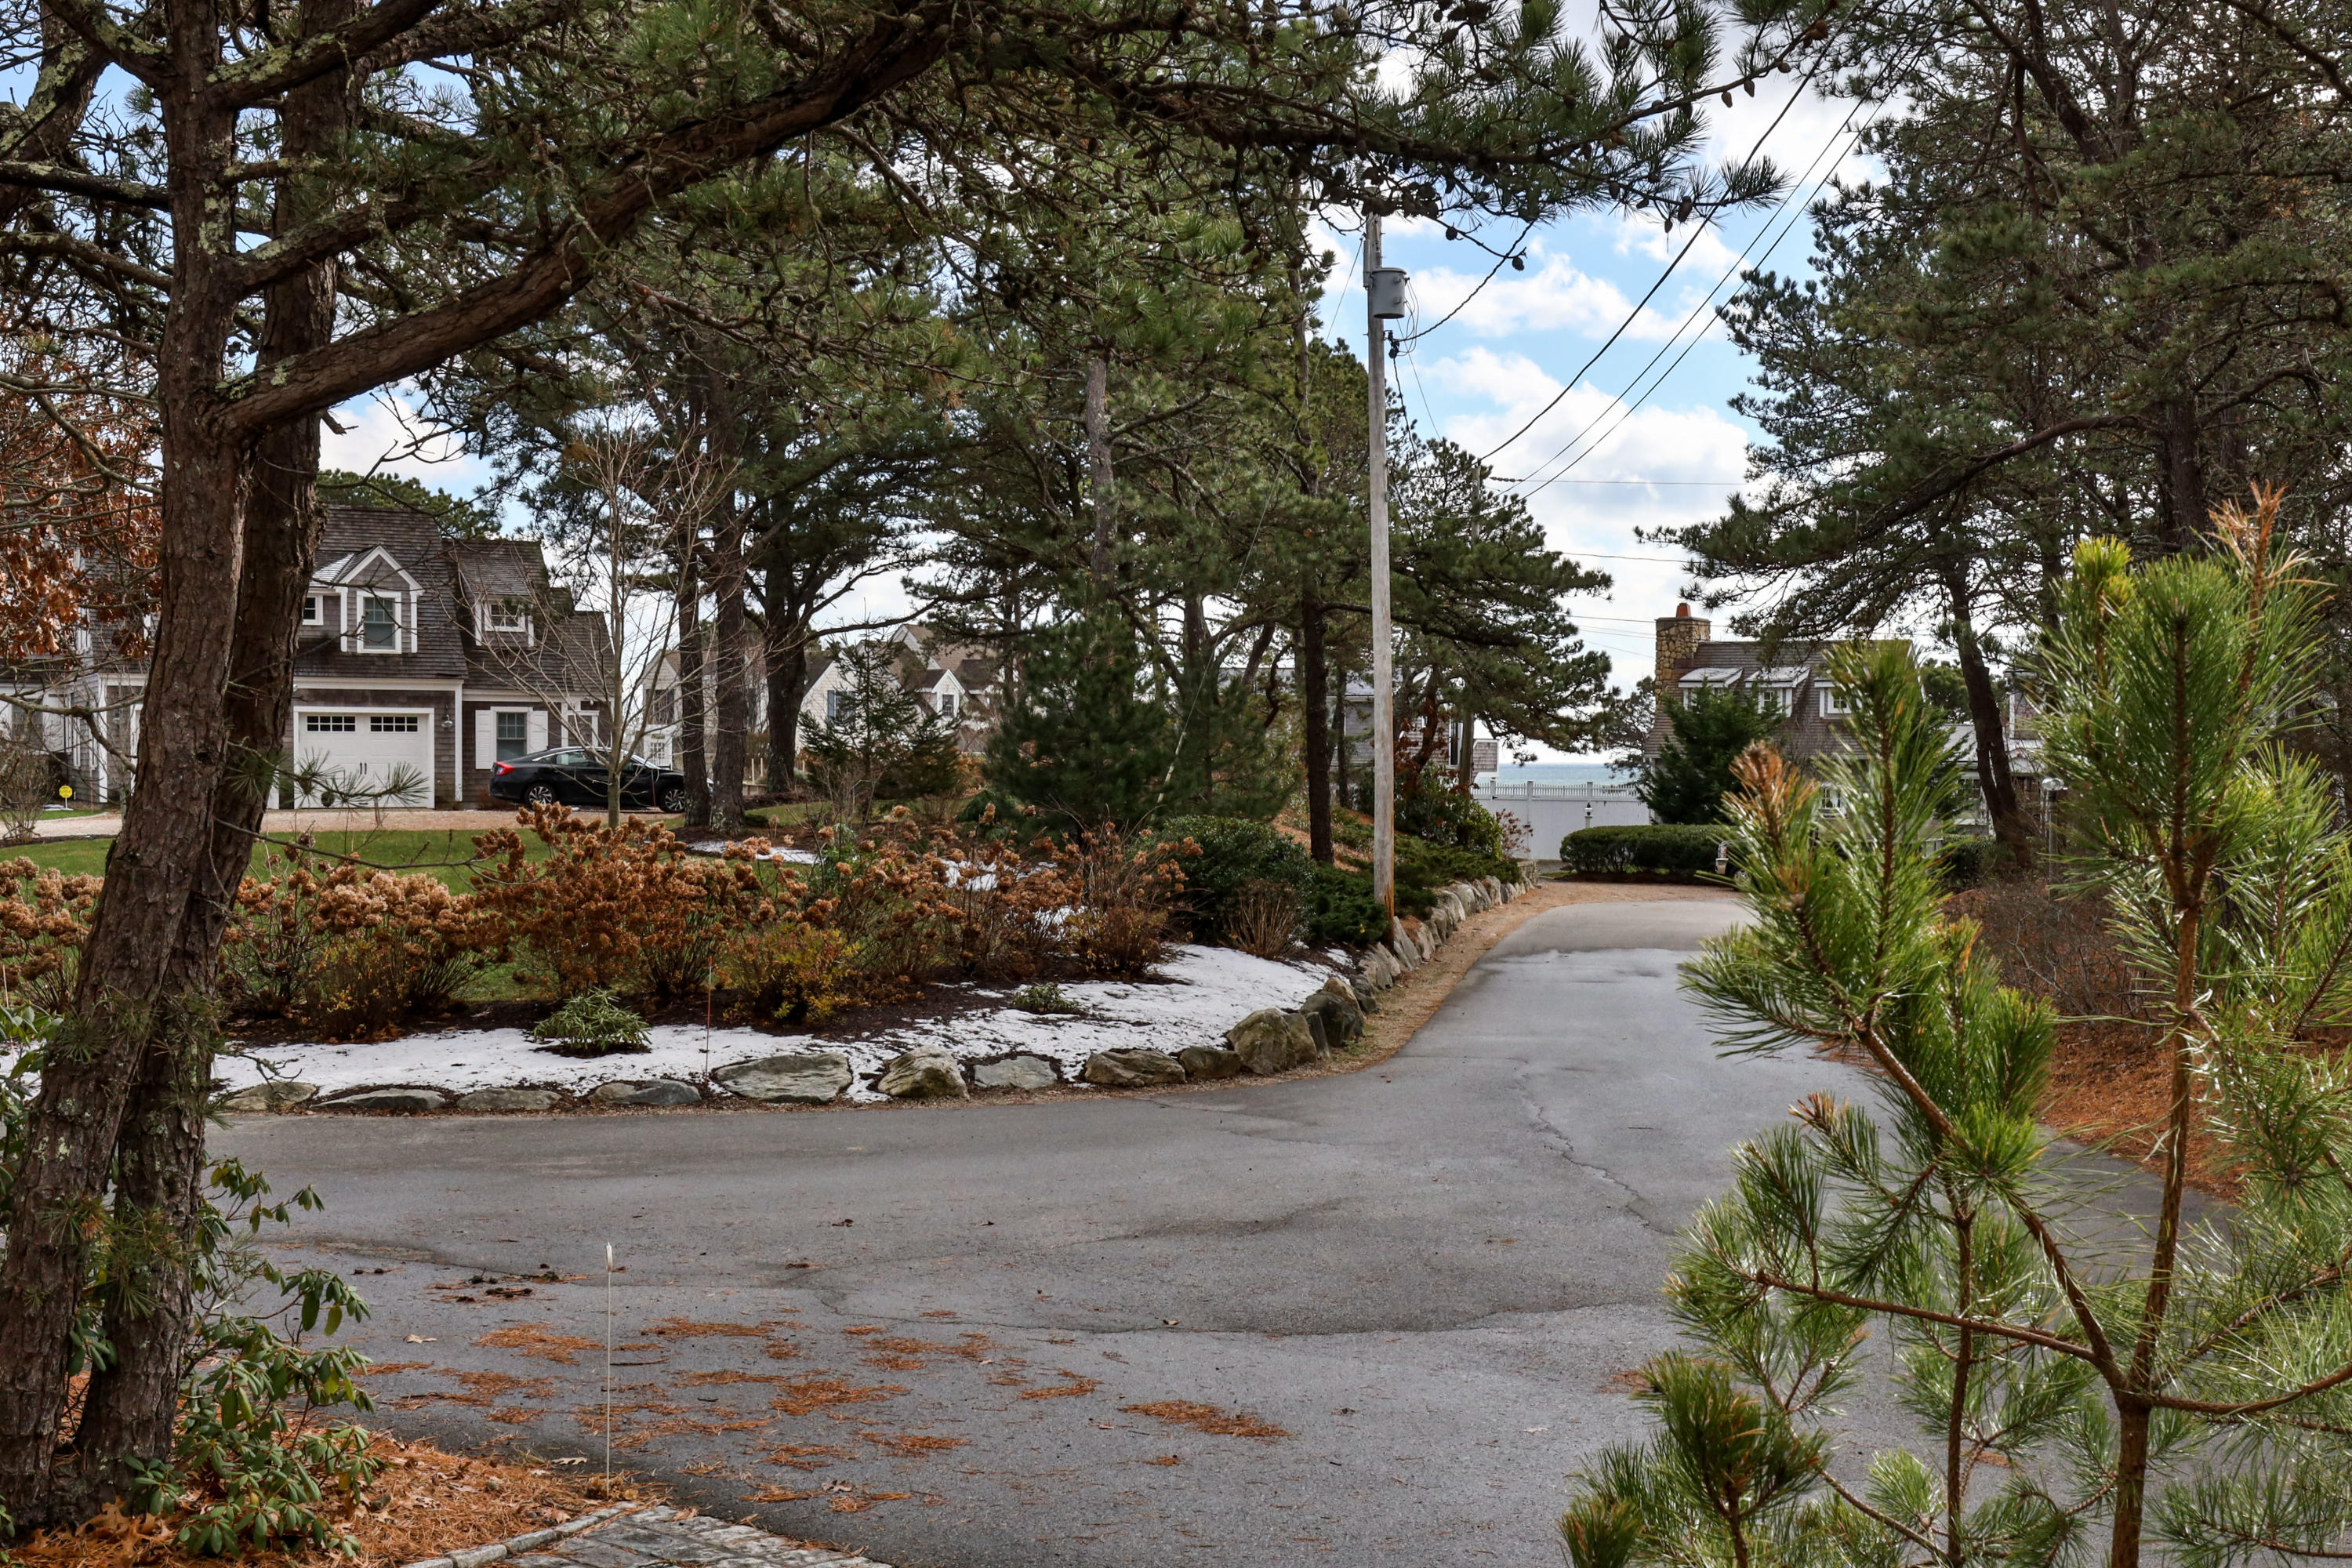 50 Nons Road, Harwich Port, MA photo 5